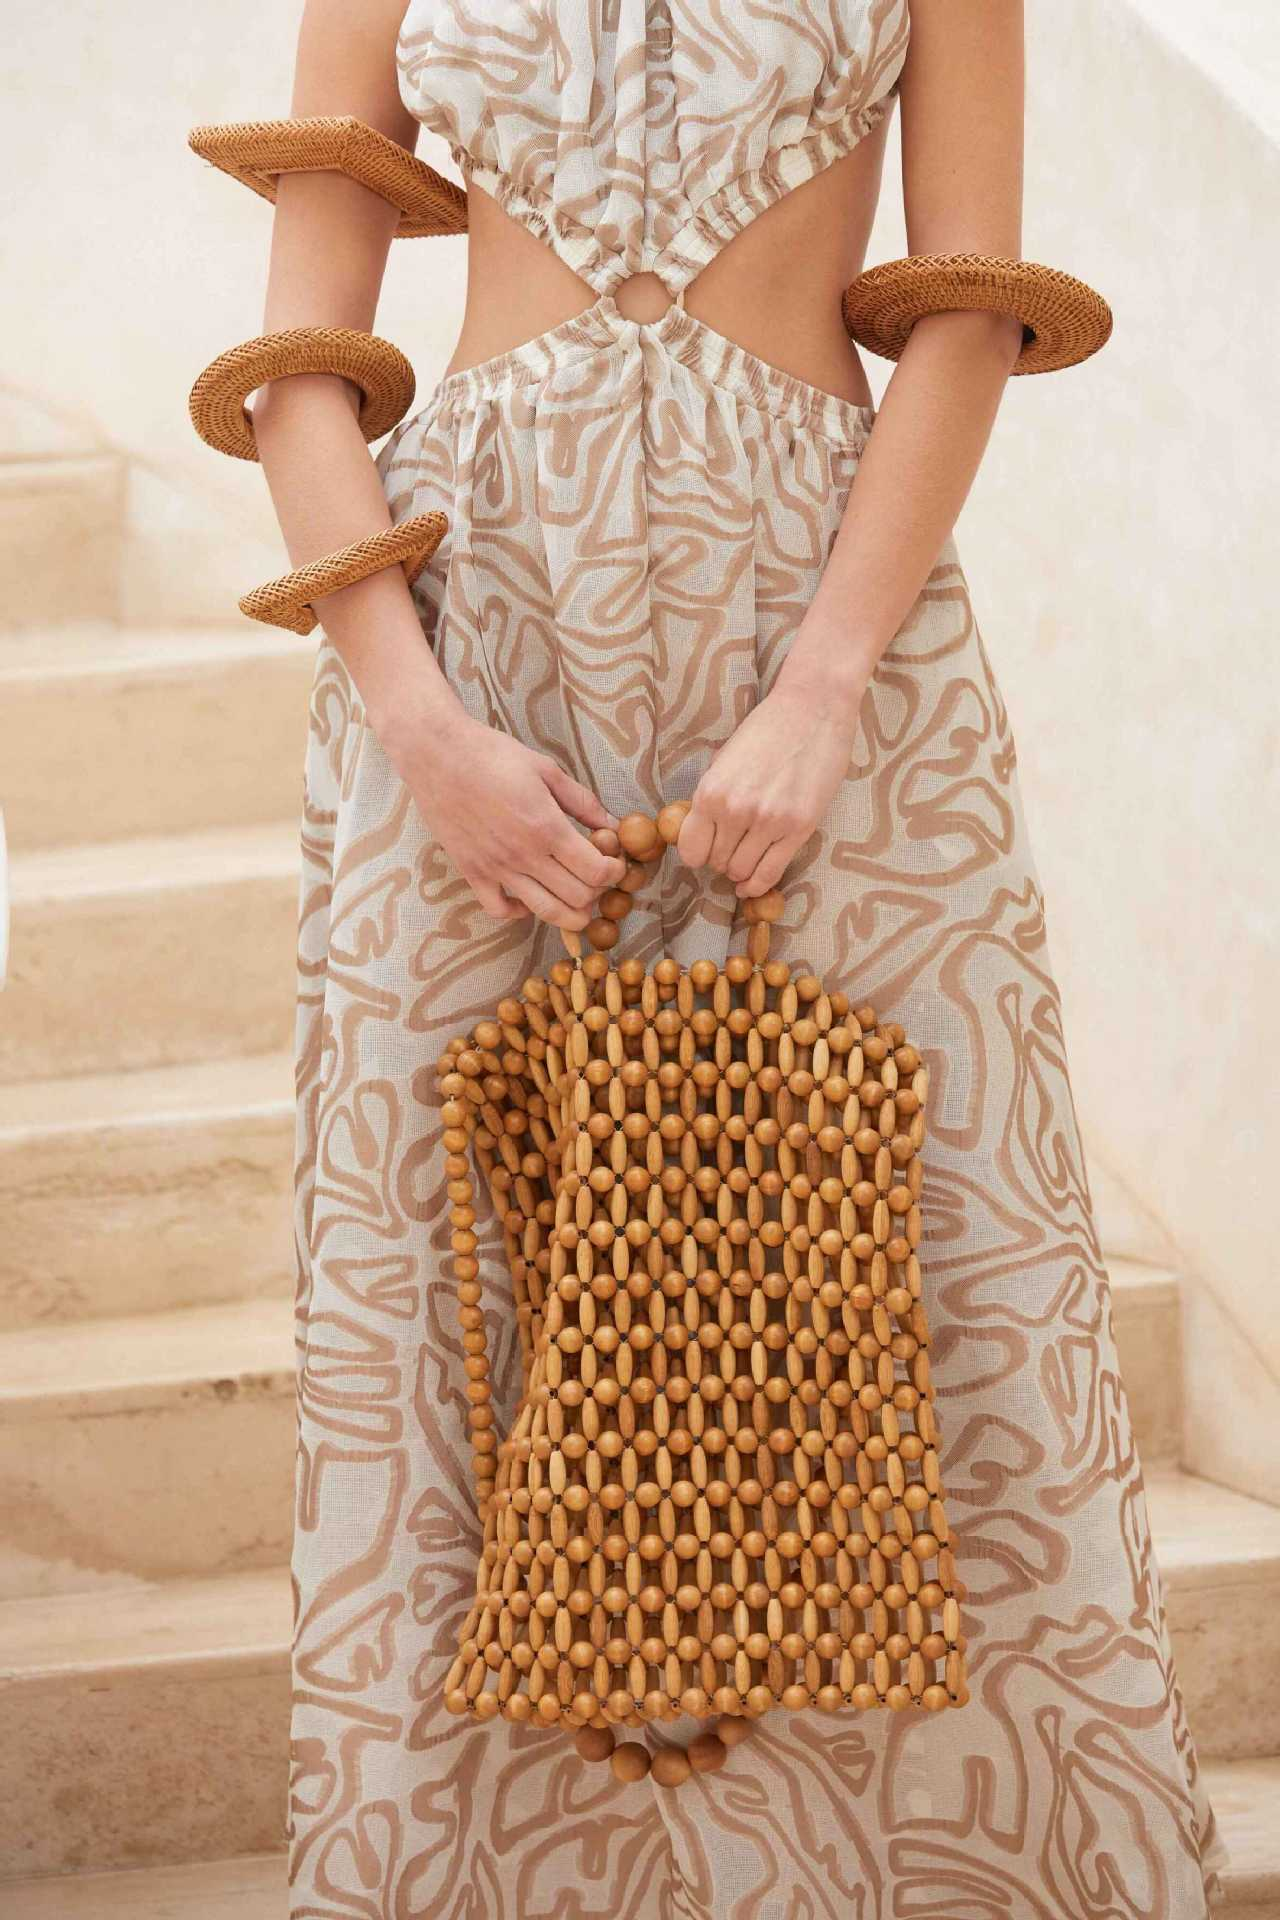 Vintage Hand-woven Handbag Natural Wooden Beads Shoulder Bag Bohemian Style Bamboo Beach Summer Fashion